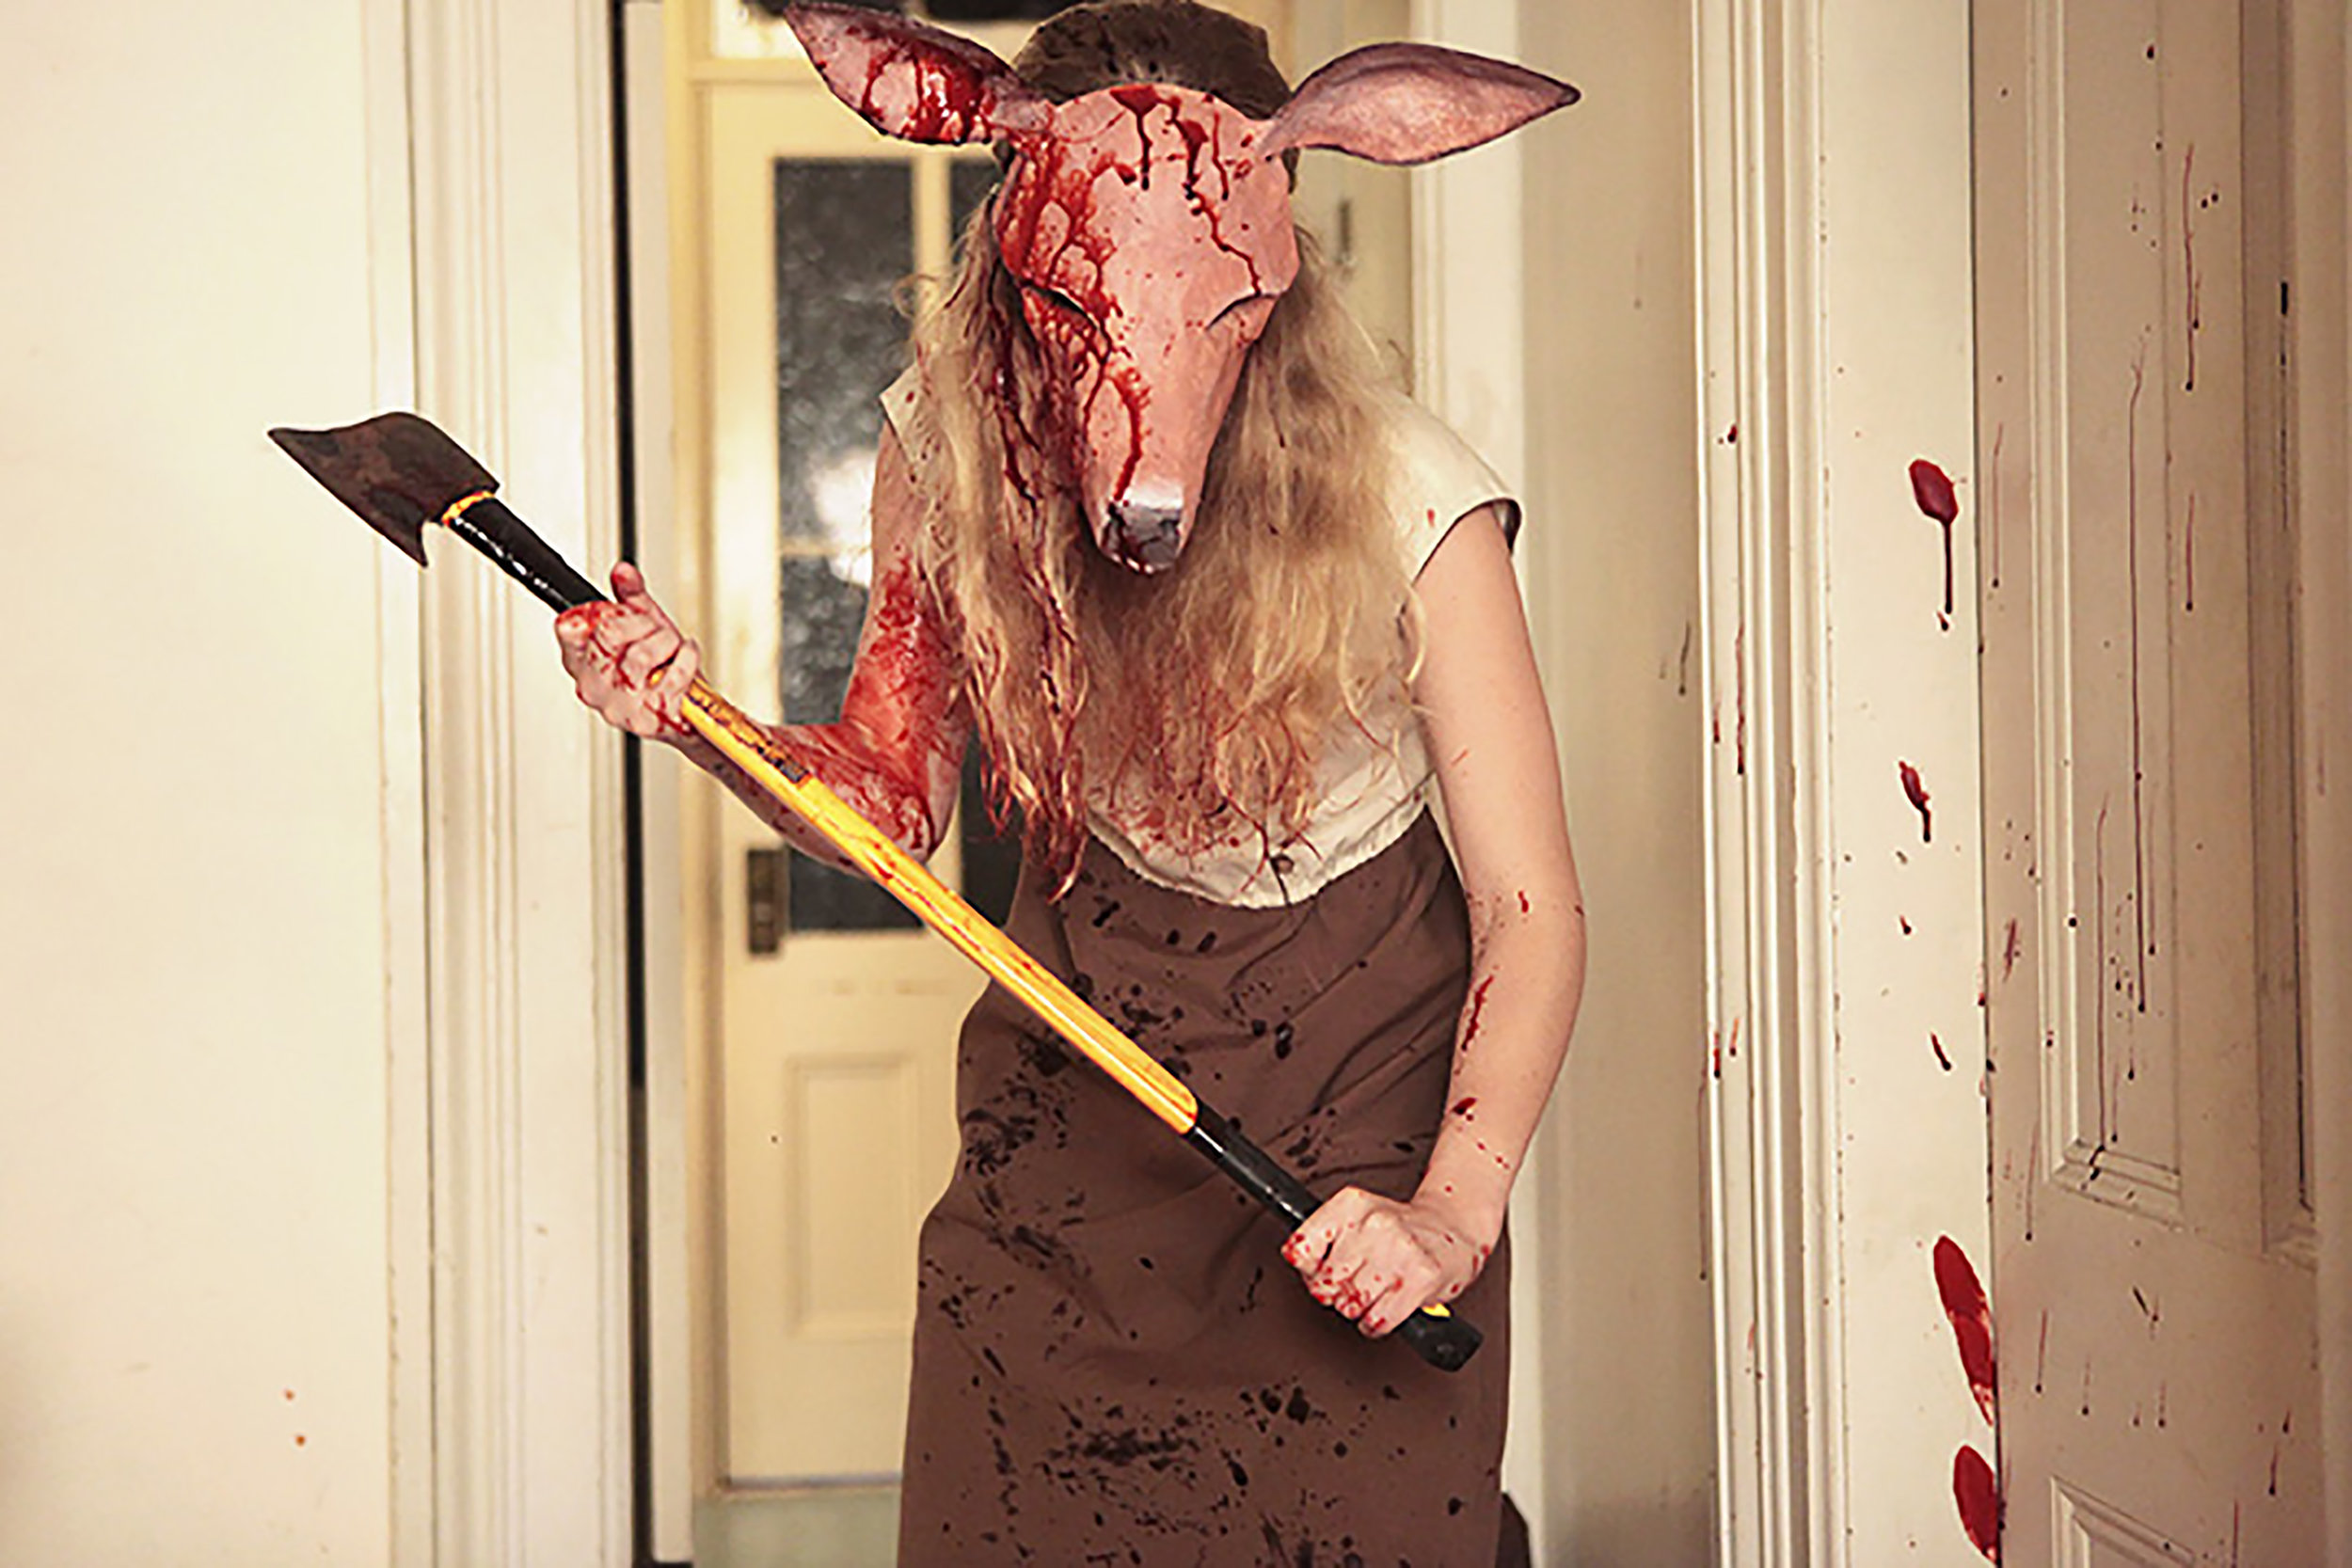 Ms. Deer strikes back - Party Animals  (2015)